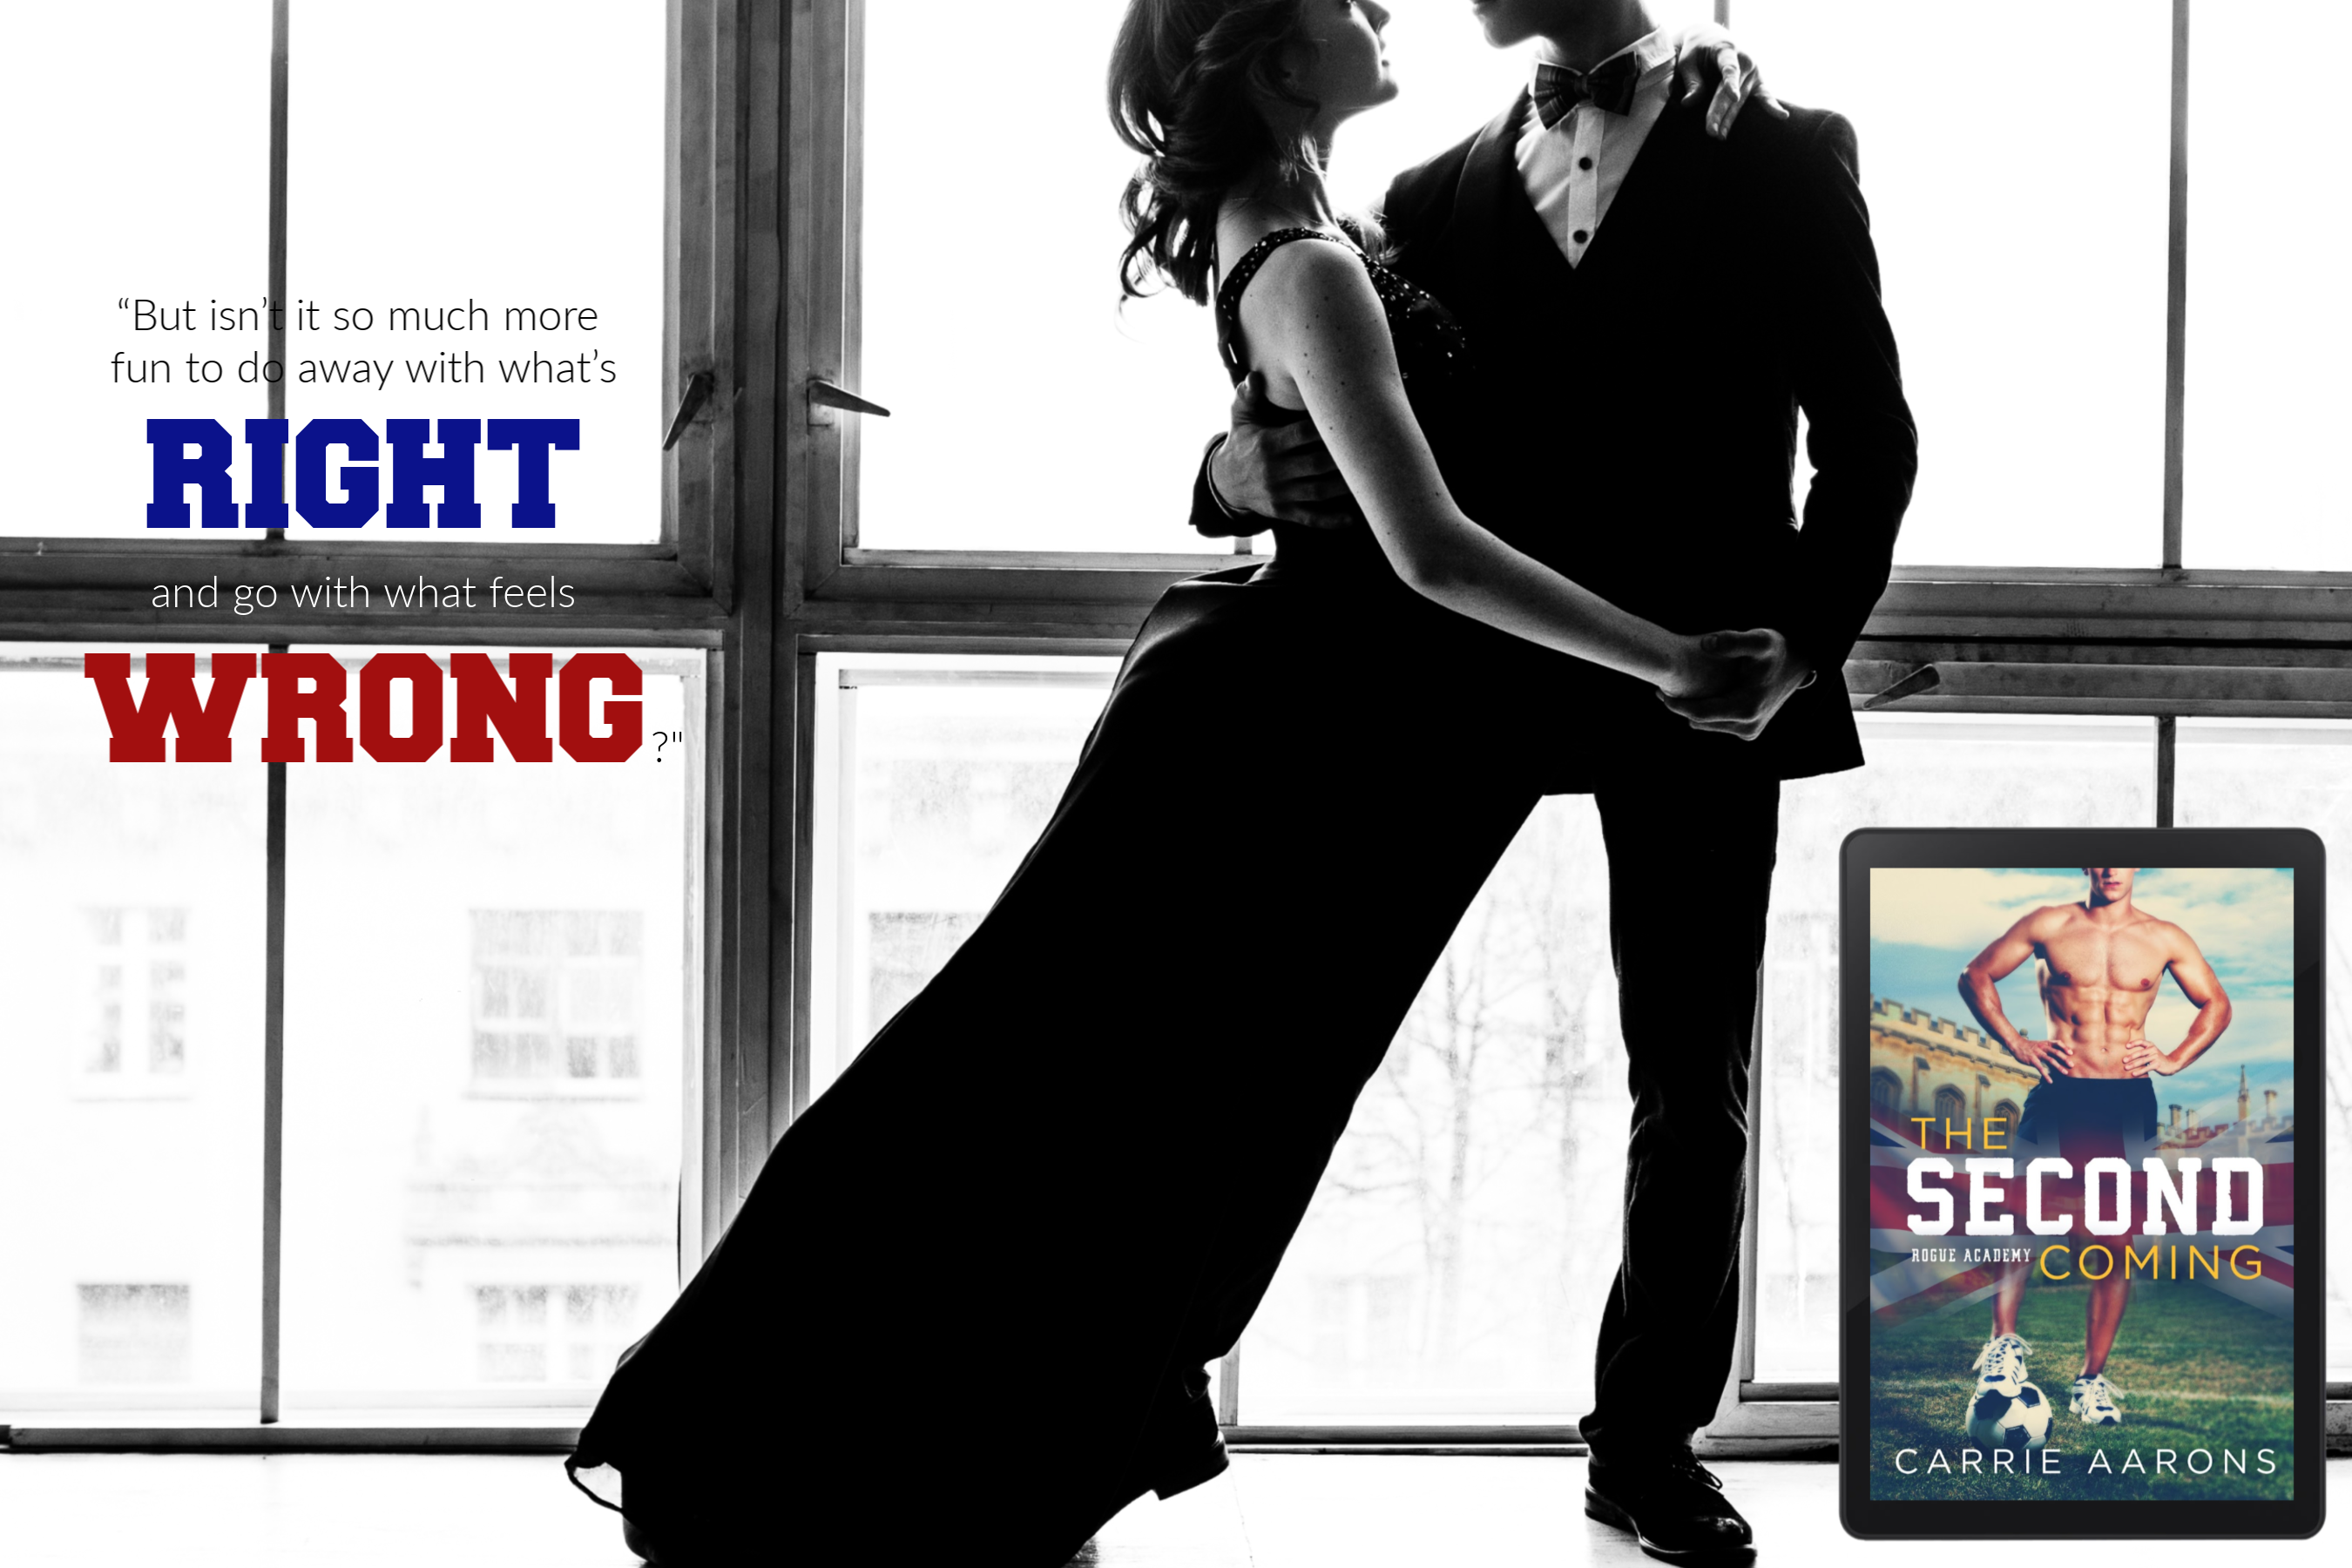 THE SECOND COMING by Carrie Aarons – Teaser Reveal